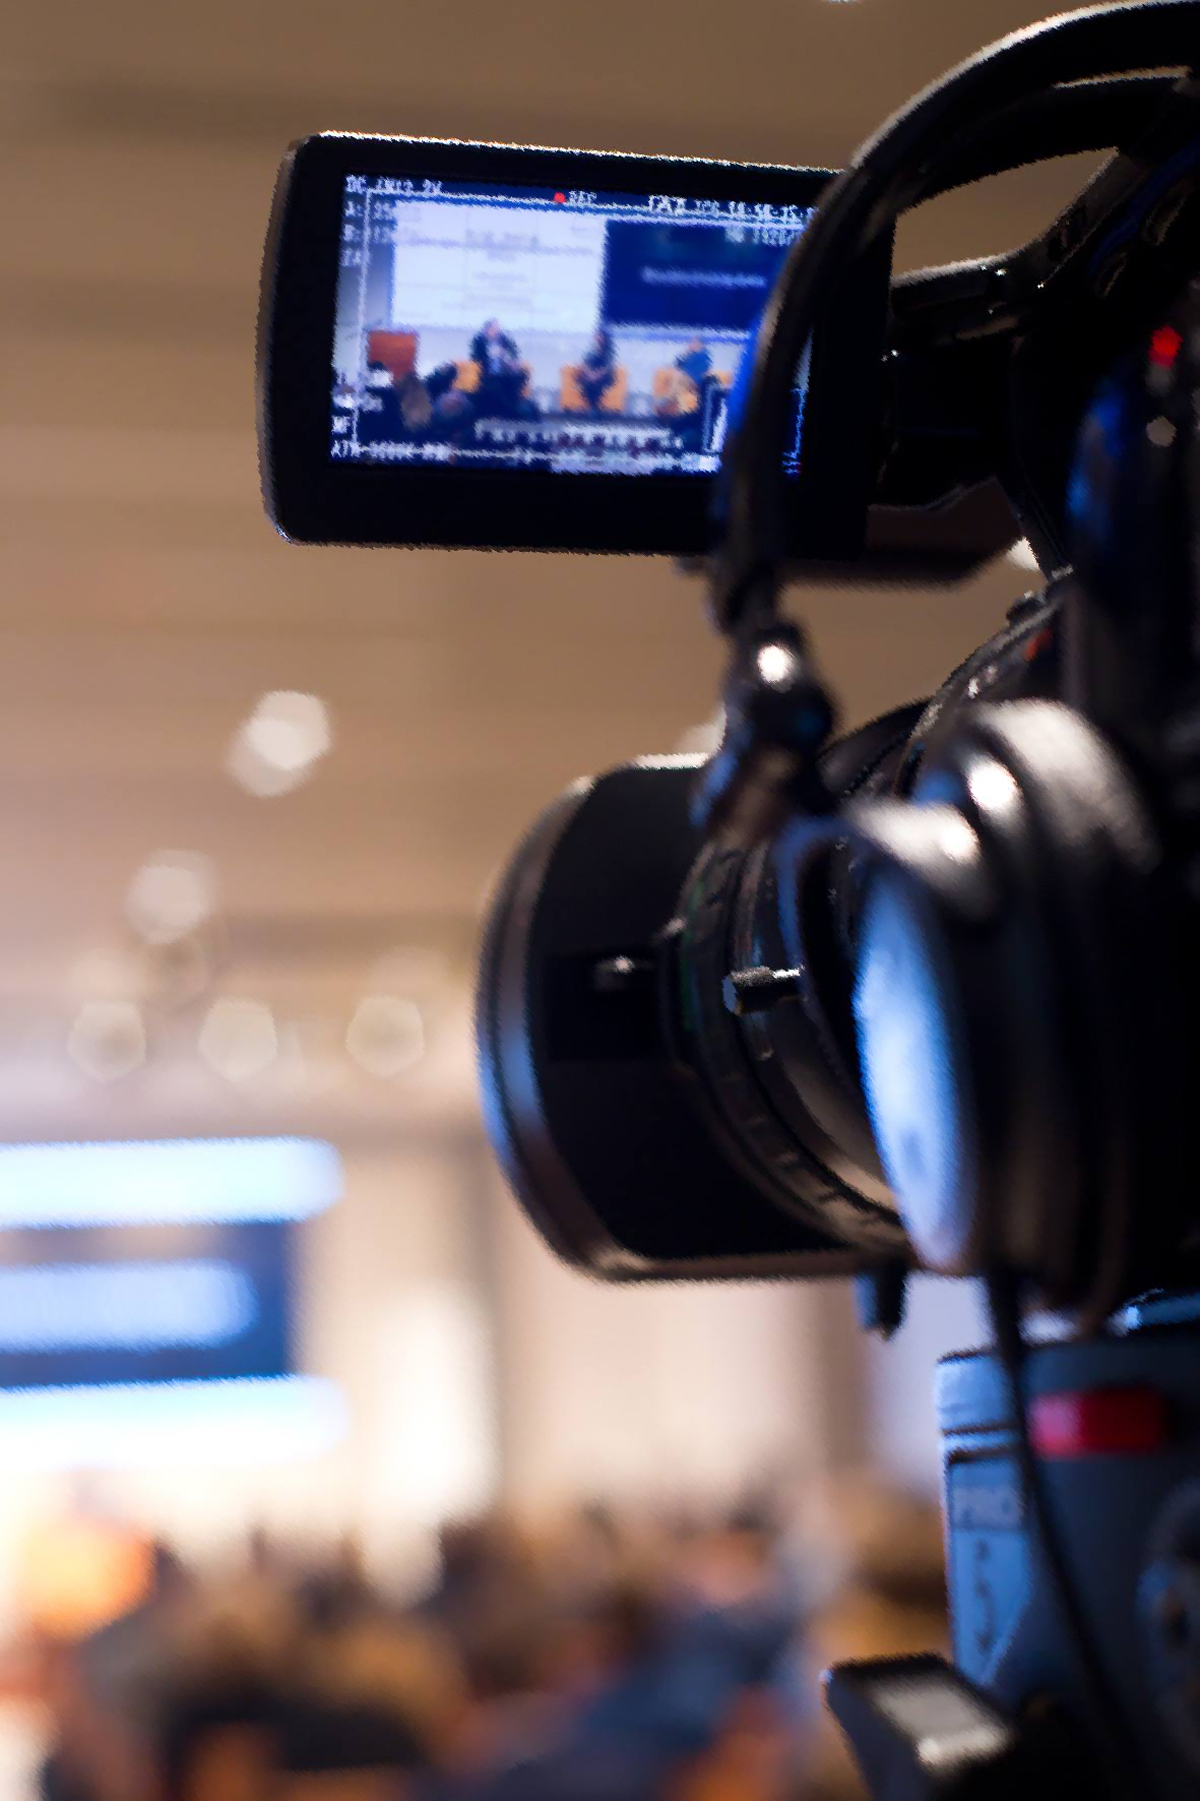 Livestream medien impuls by AlexBerlin © sh/fsf